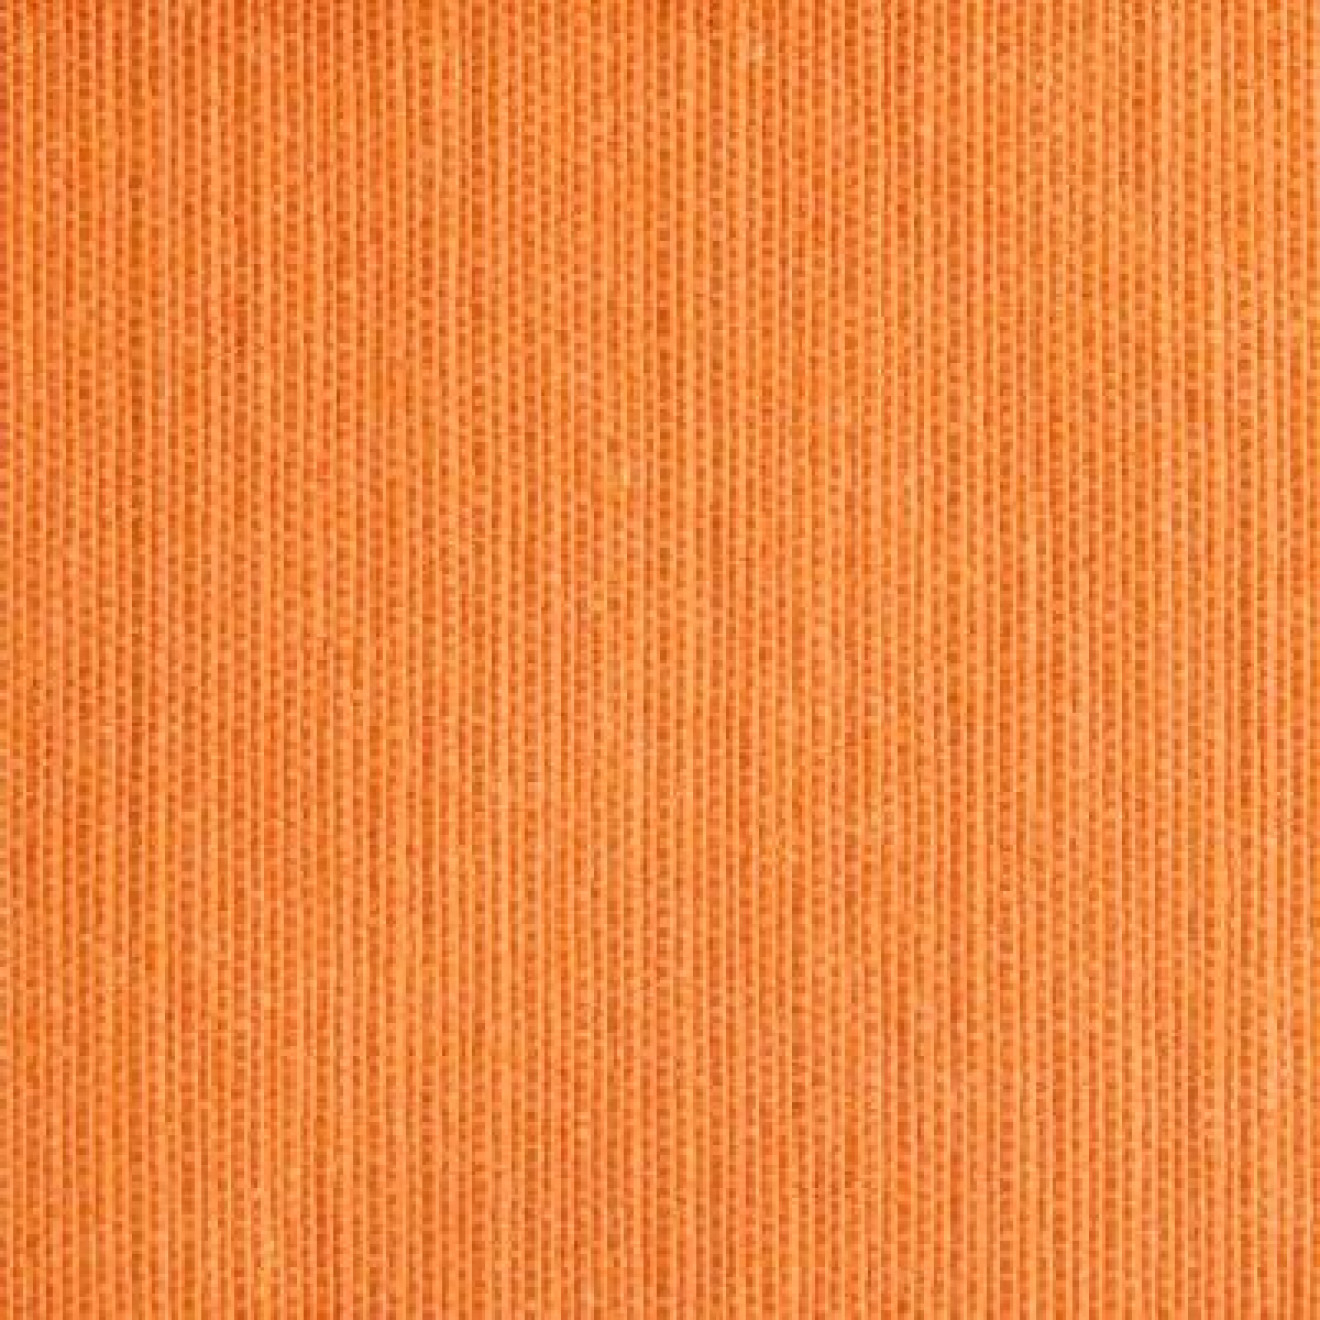 Dreieck - Acrylstoff Loneta Color 147